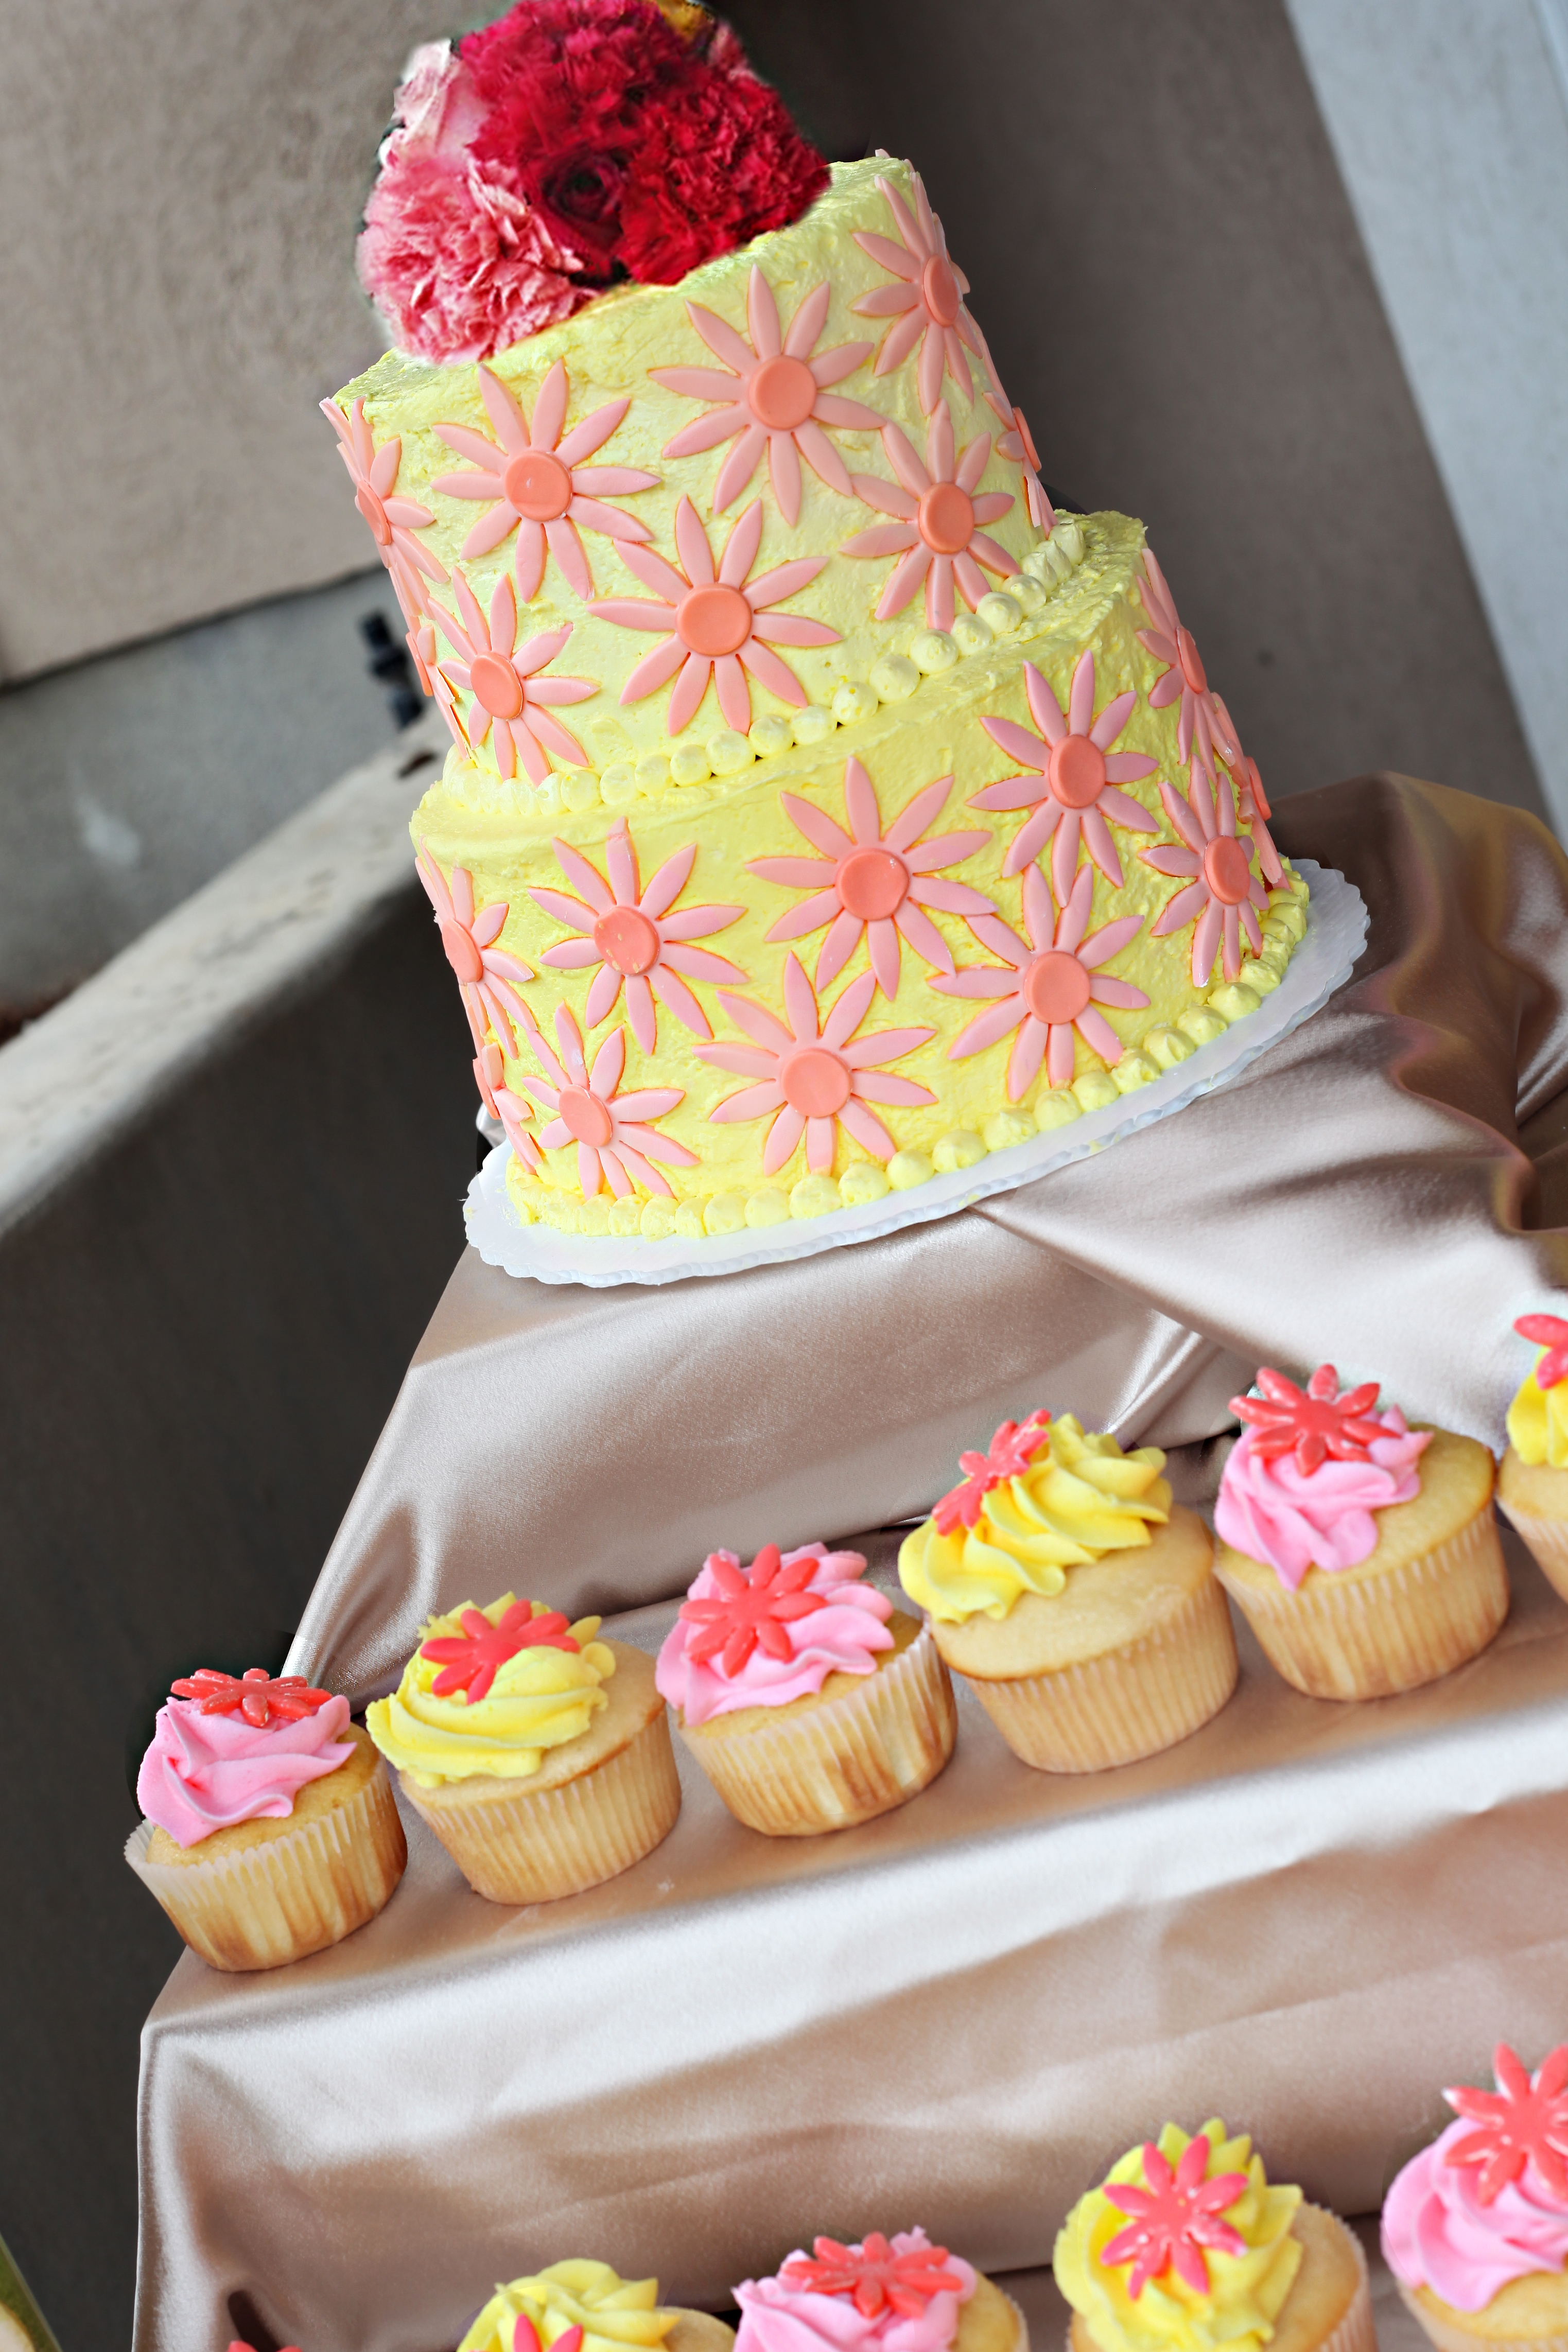 11 Yellow And Pink Wedding Cupcakes Ideas Photo - Hot Pink and ...